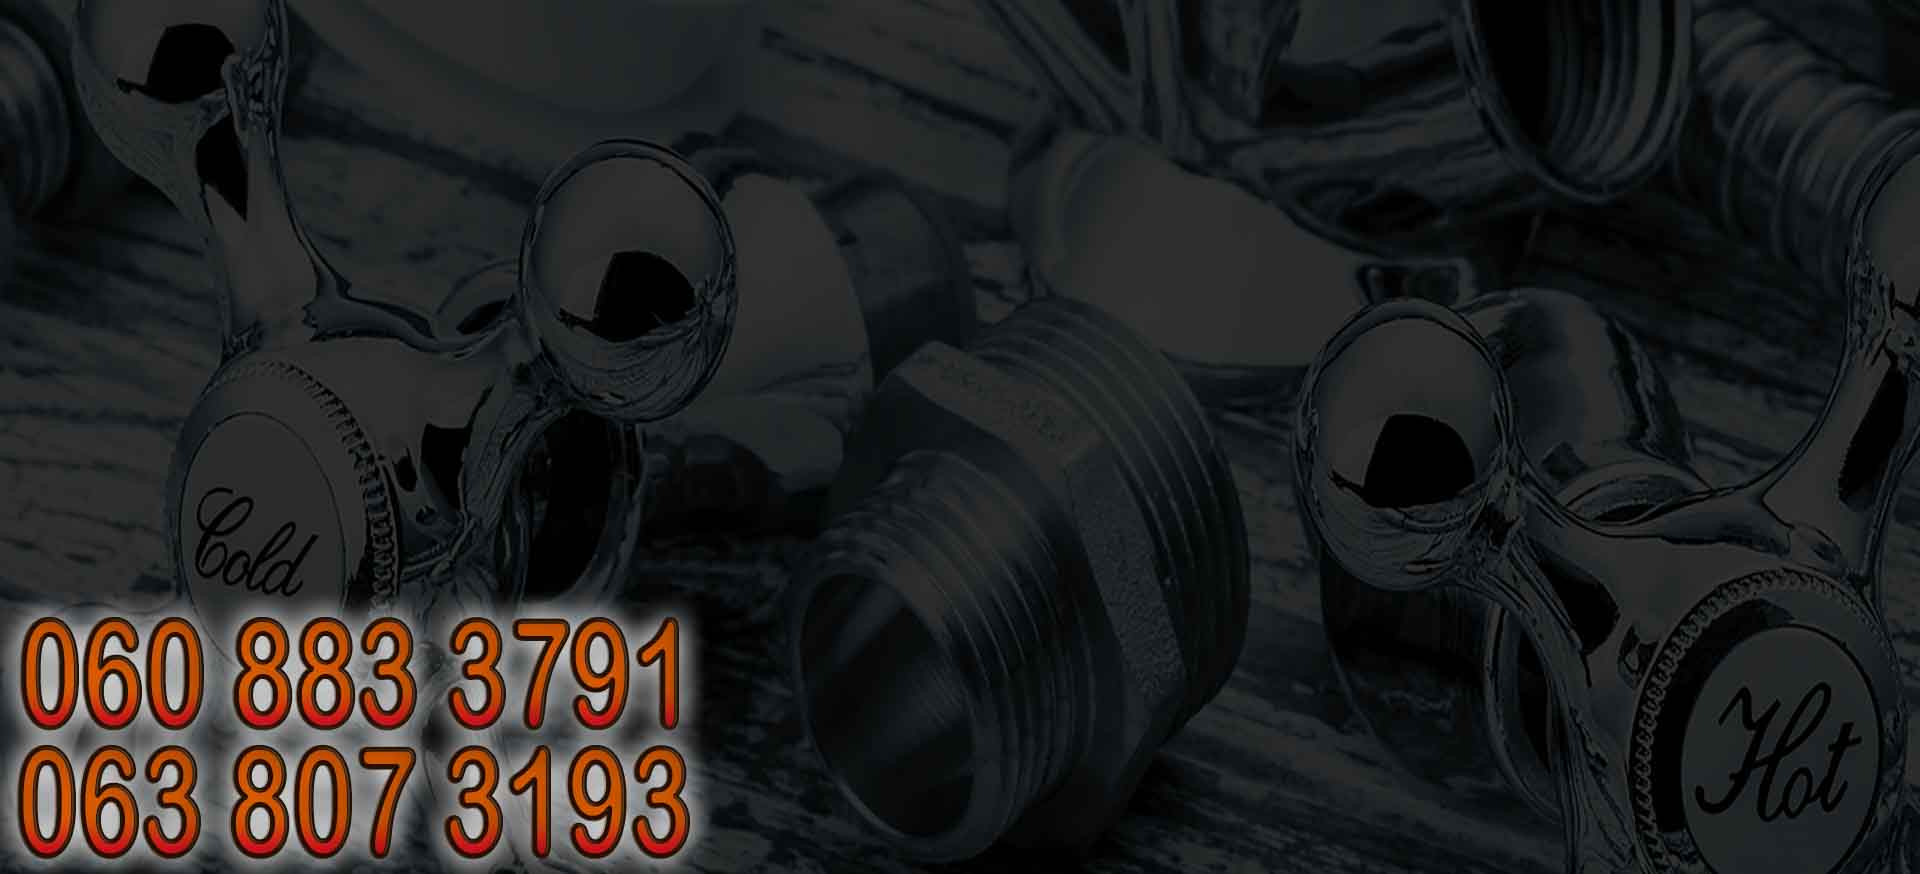 Welcome to our header image for 24/7 Bezuidenhoutsvallei Plumbers.